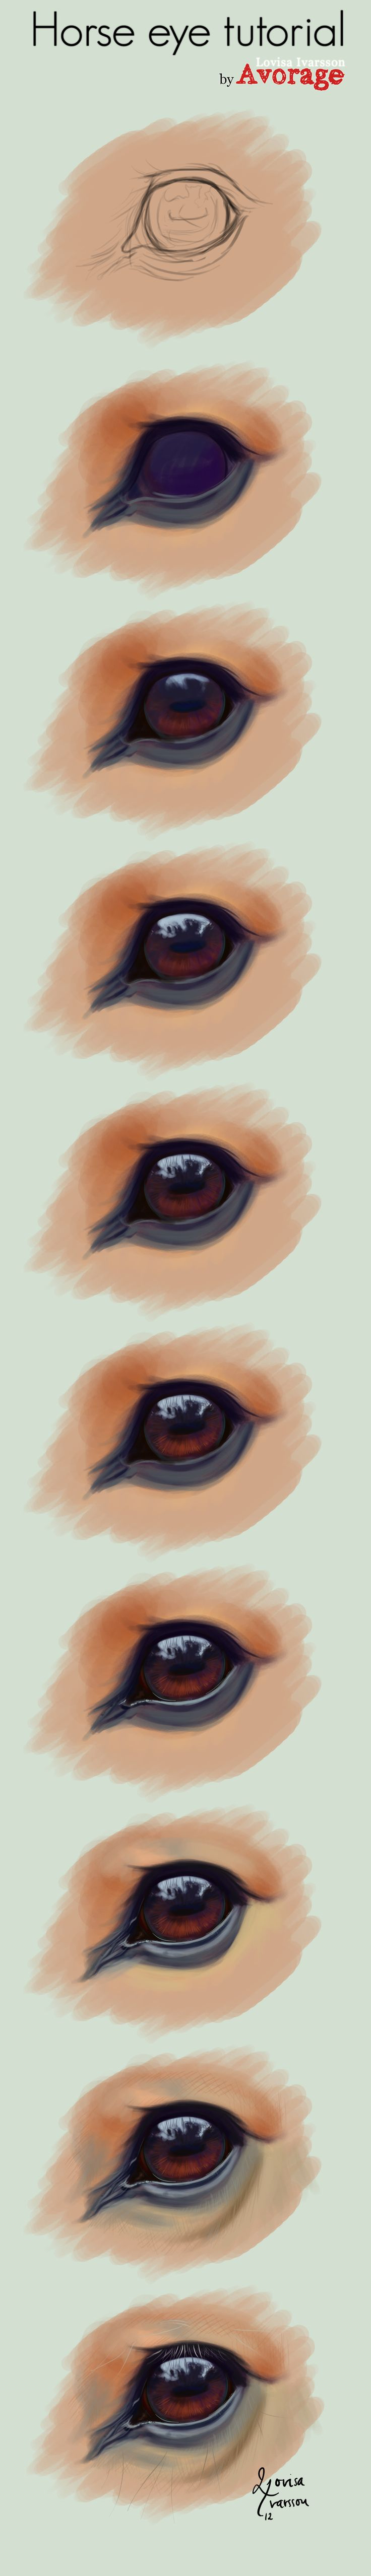 Horse Eye Tutorial by Avorage.deviantart.com on @deviantART